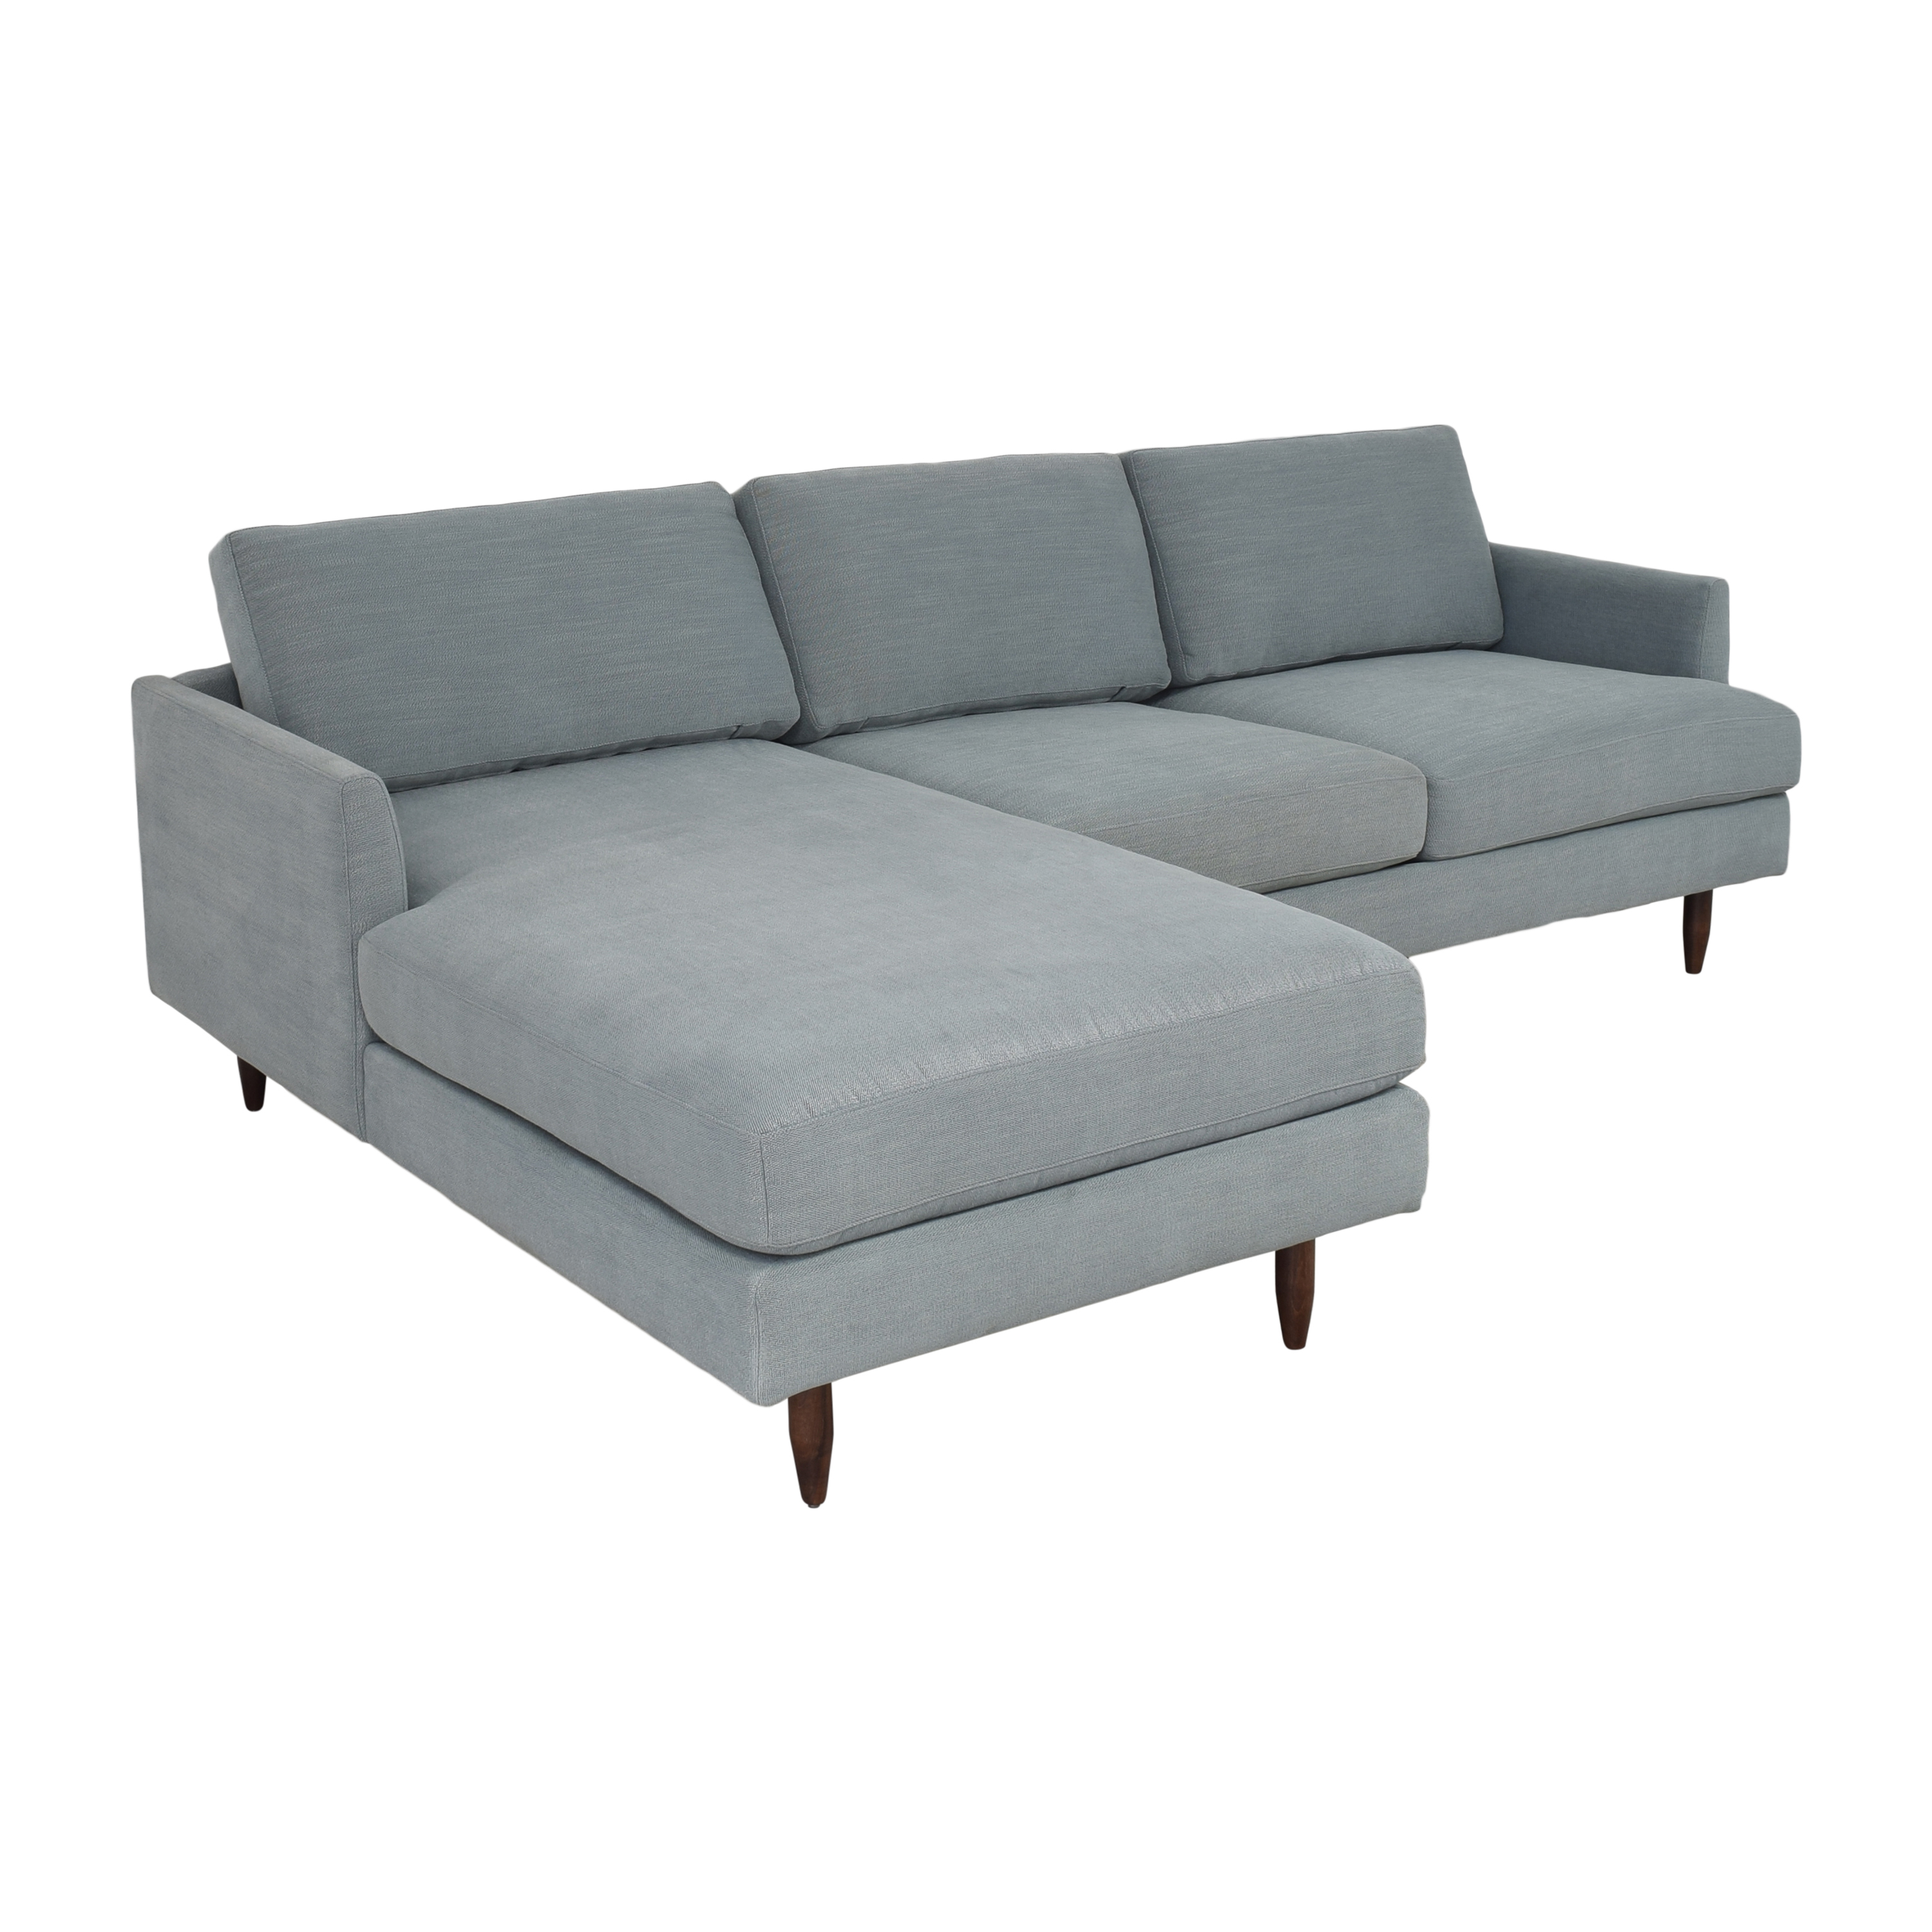 shop BenchMade Modern BenchMade Modern Crowd Pleaser Sectional Sofa with Chaise online